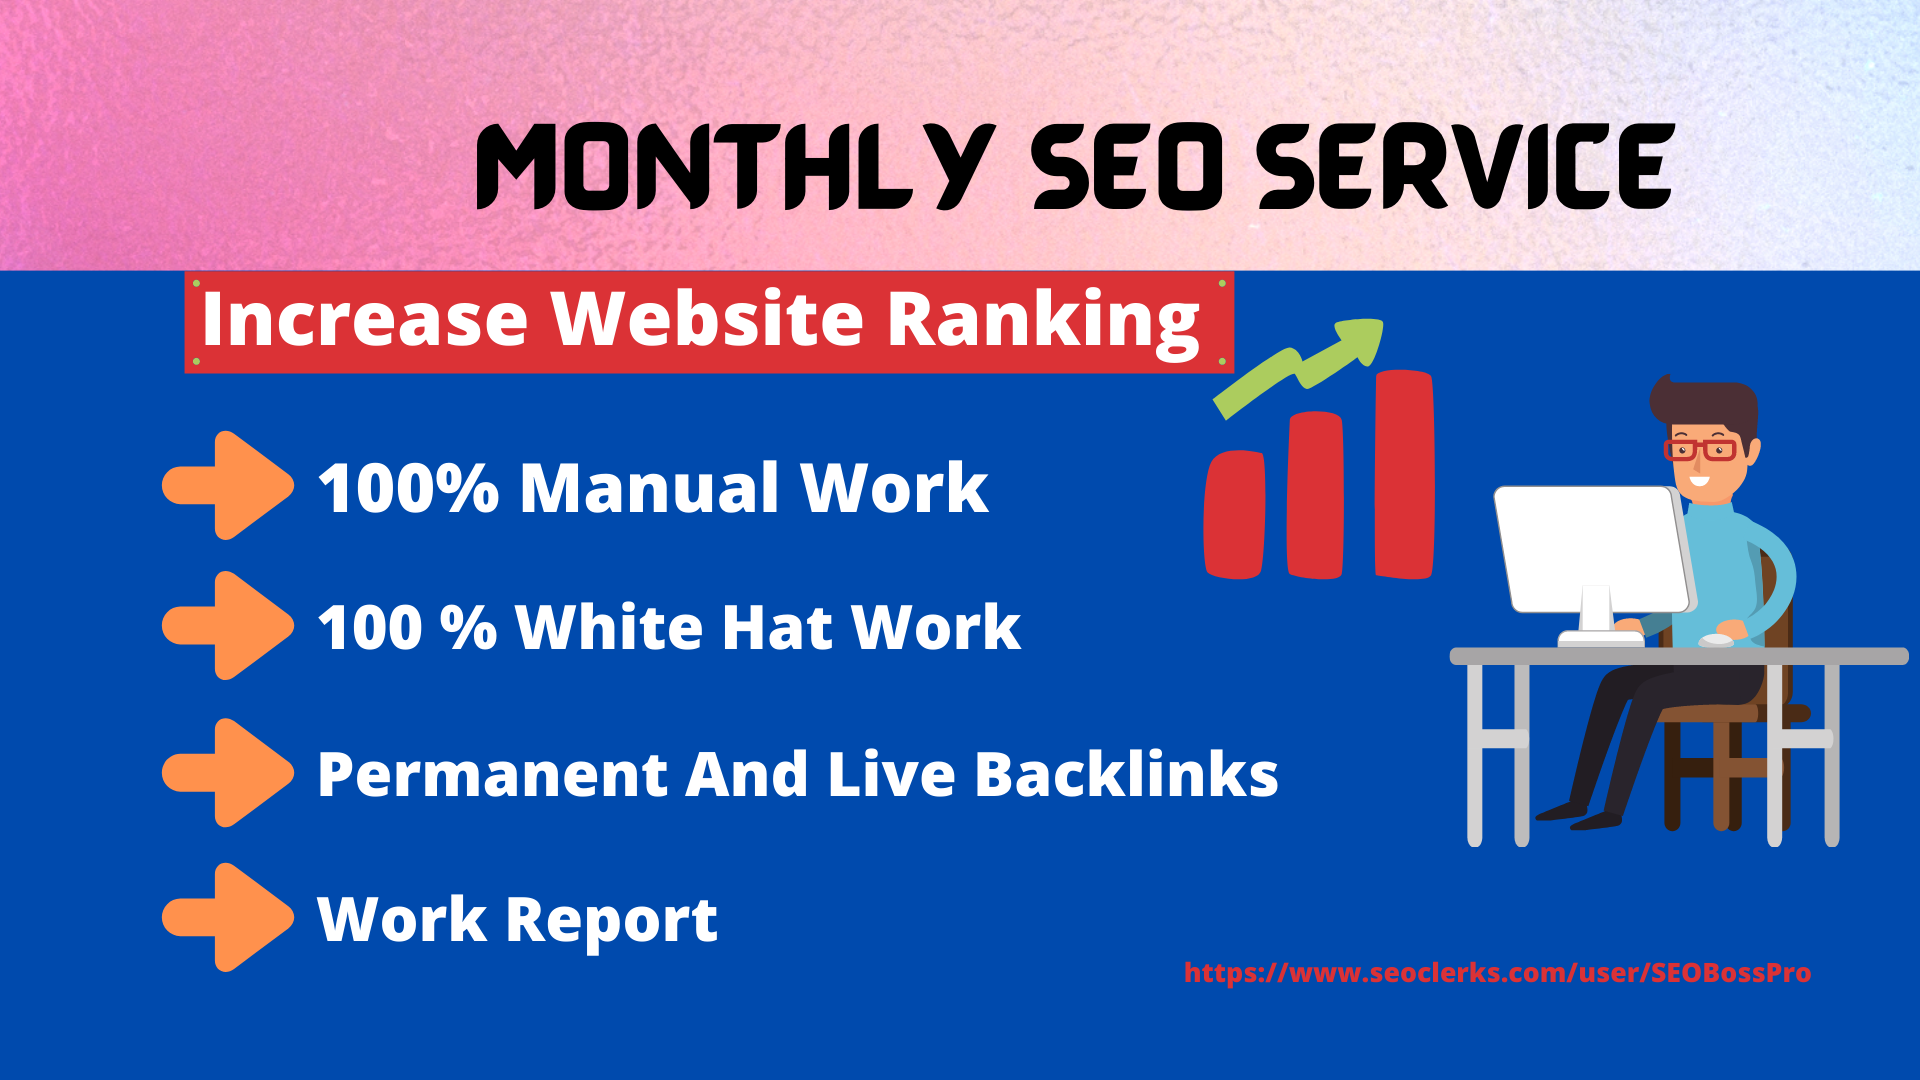 I will create manually white hat monthly SEO service higher ranking in google